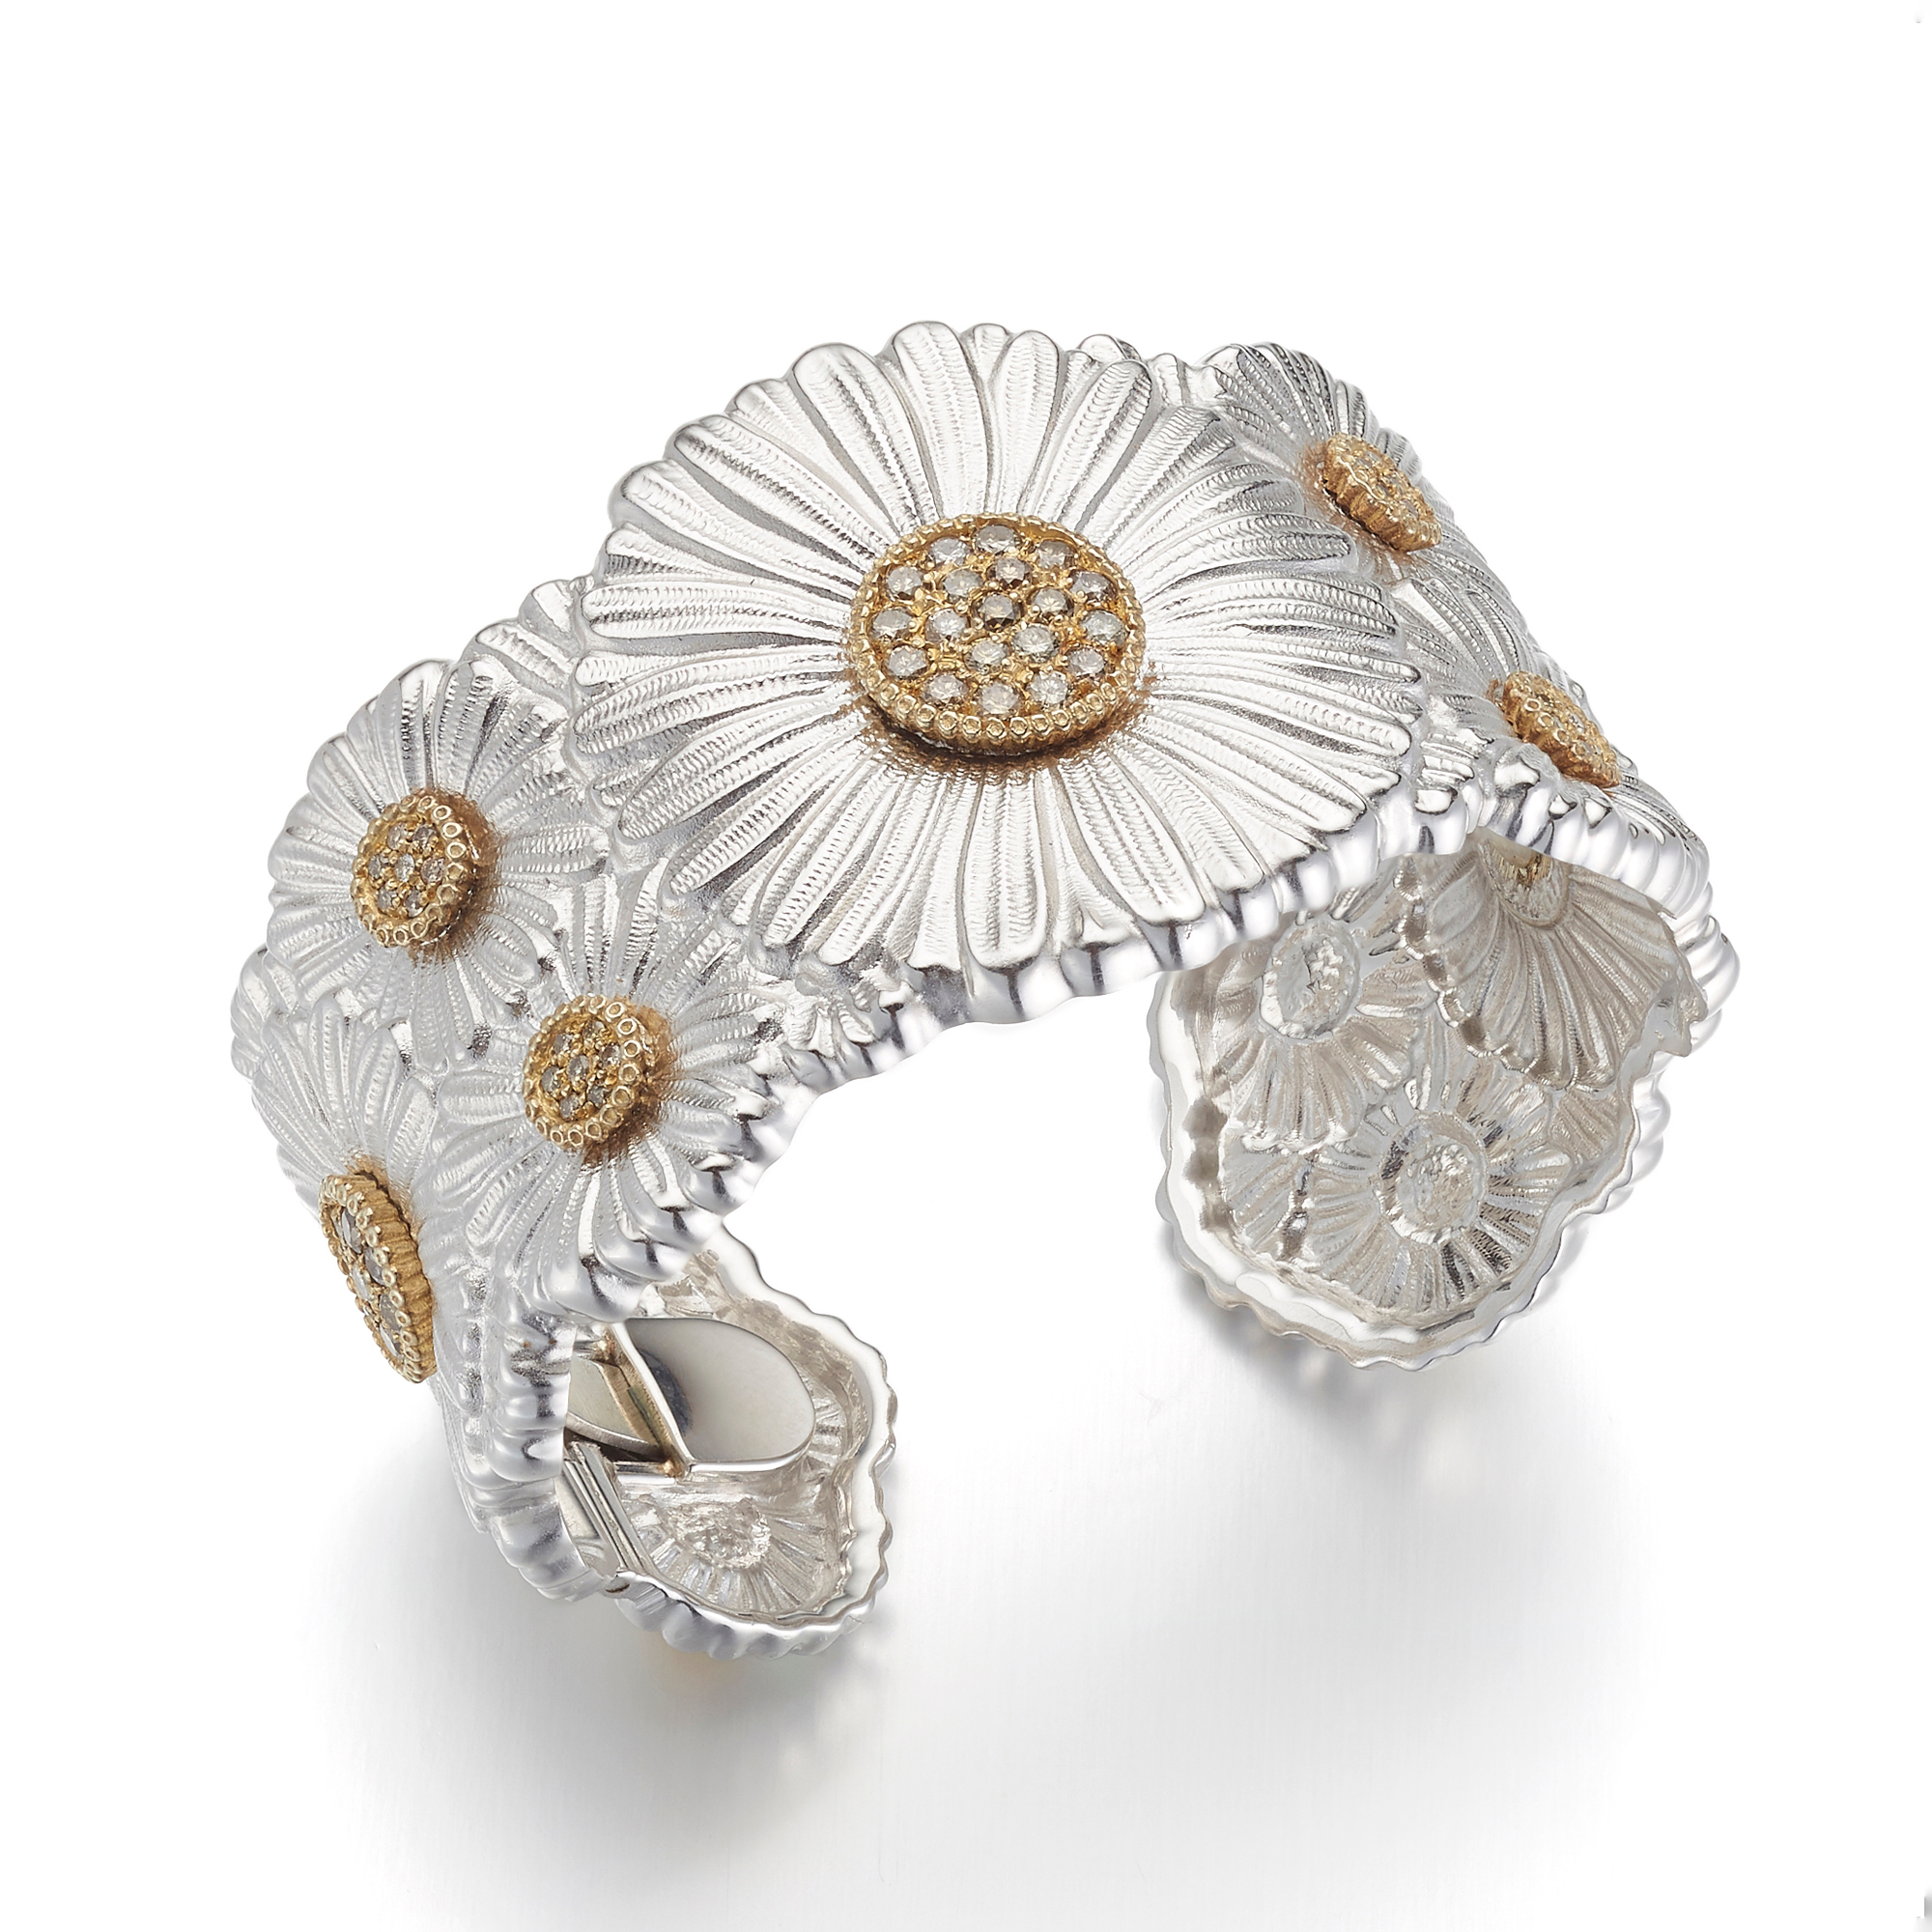 Buccellati Daisy Cuff Bracelet With Diamonds